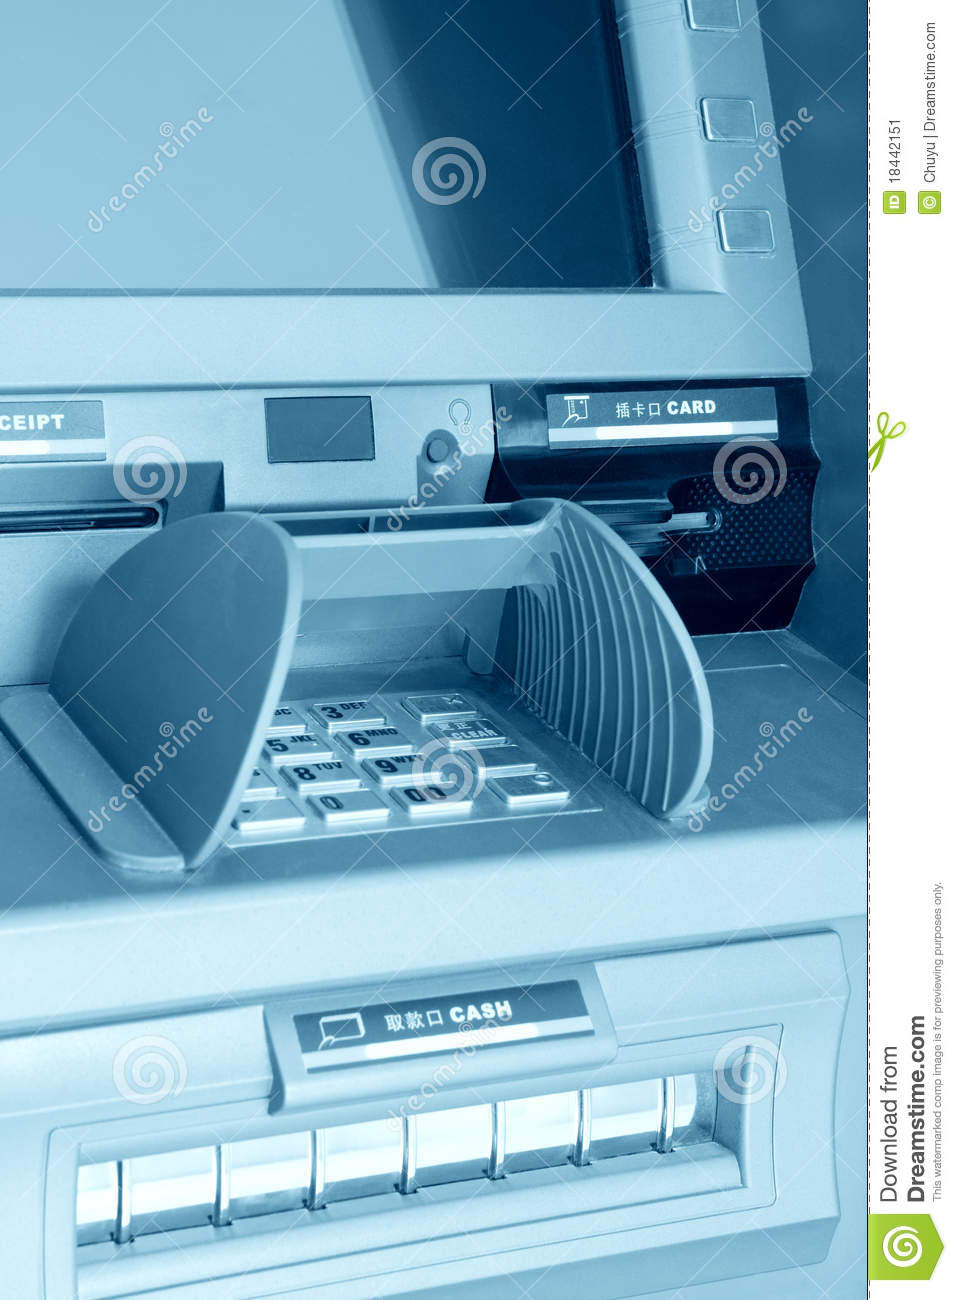 automated teller machine innovation in the banking industry Automated teller machines, better known as atms, have been a part of the american landscape since the 1970s—beacons of self-service and convenience, they revolutionized banking in ways we take .